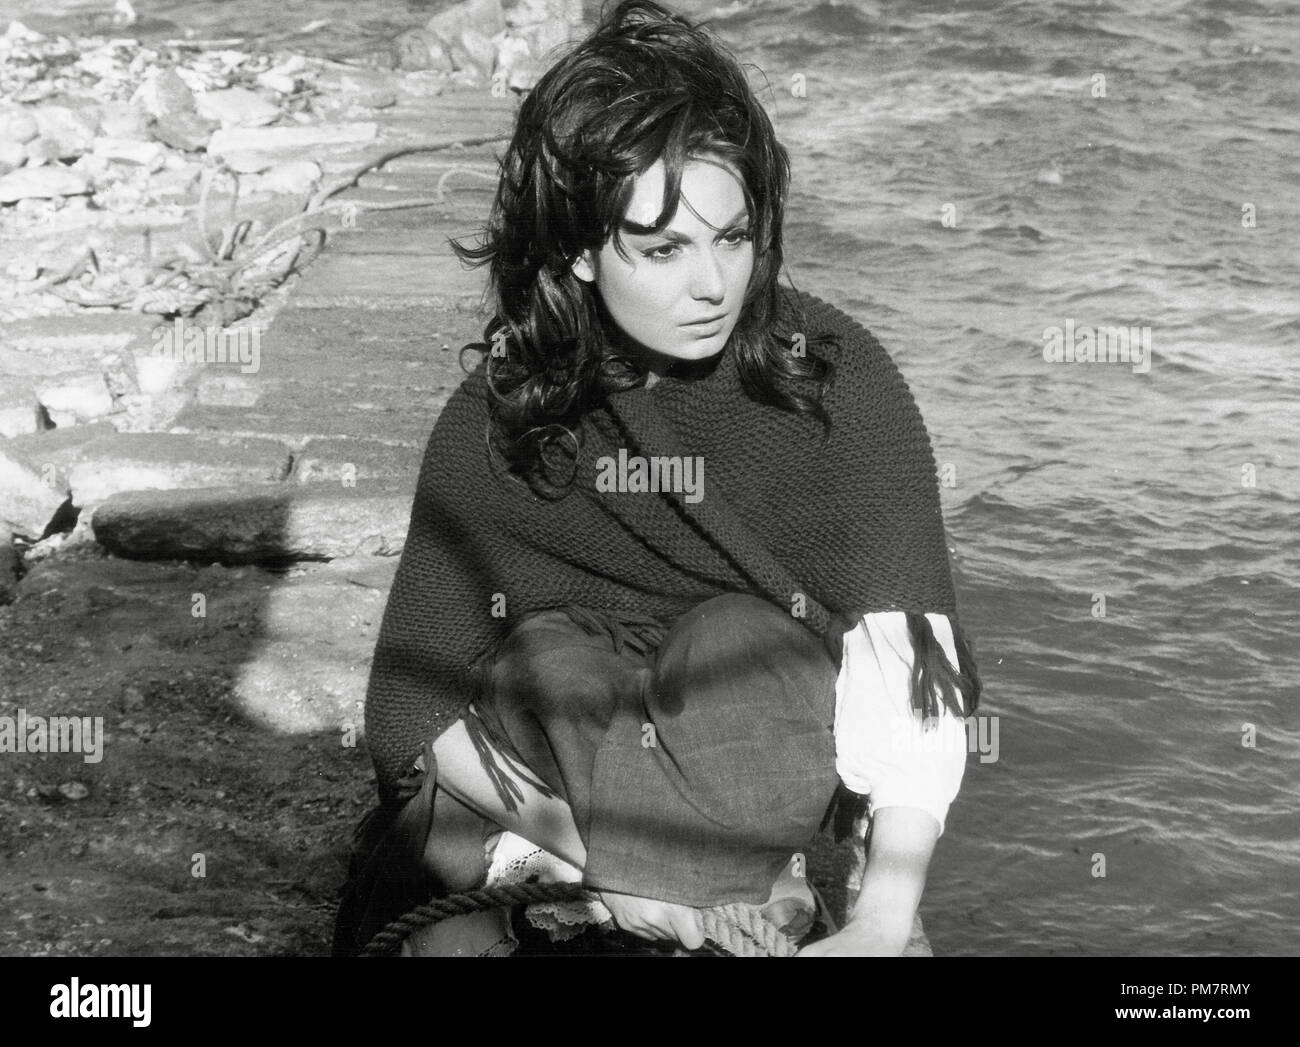 Rosanna Schiaffino, 'The Rover' 1967  File Reference # 31386_415 - Stock Image